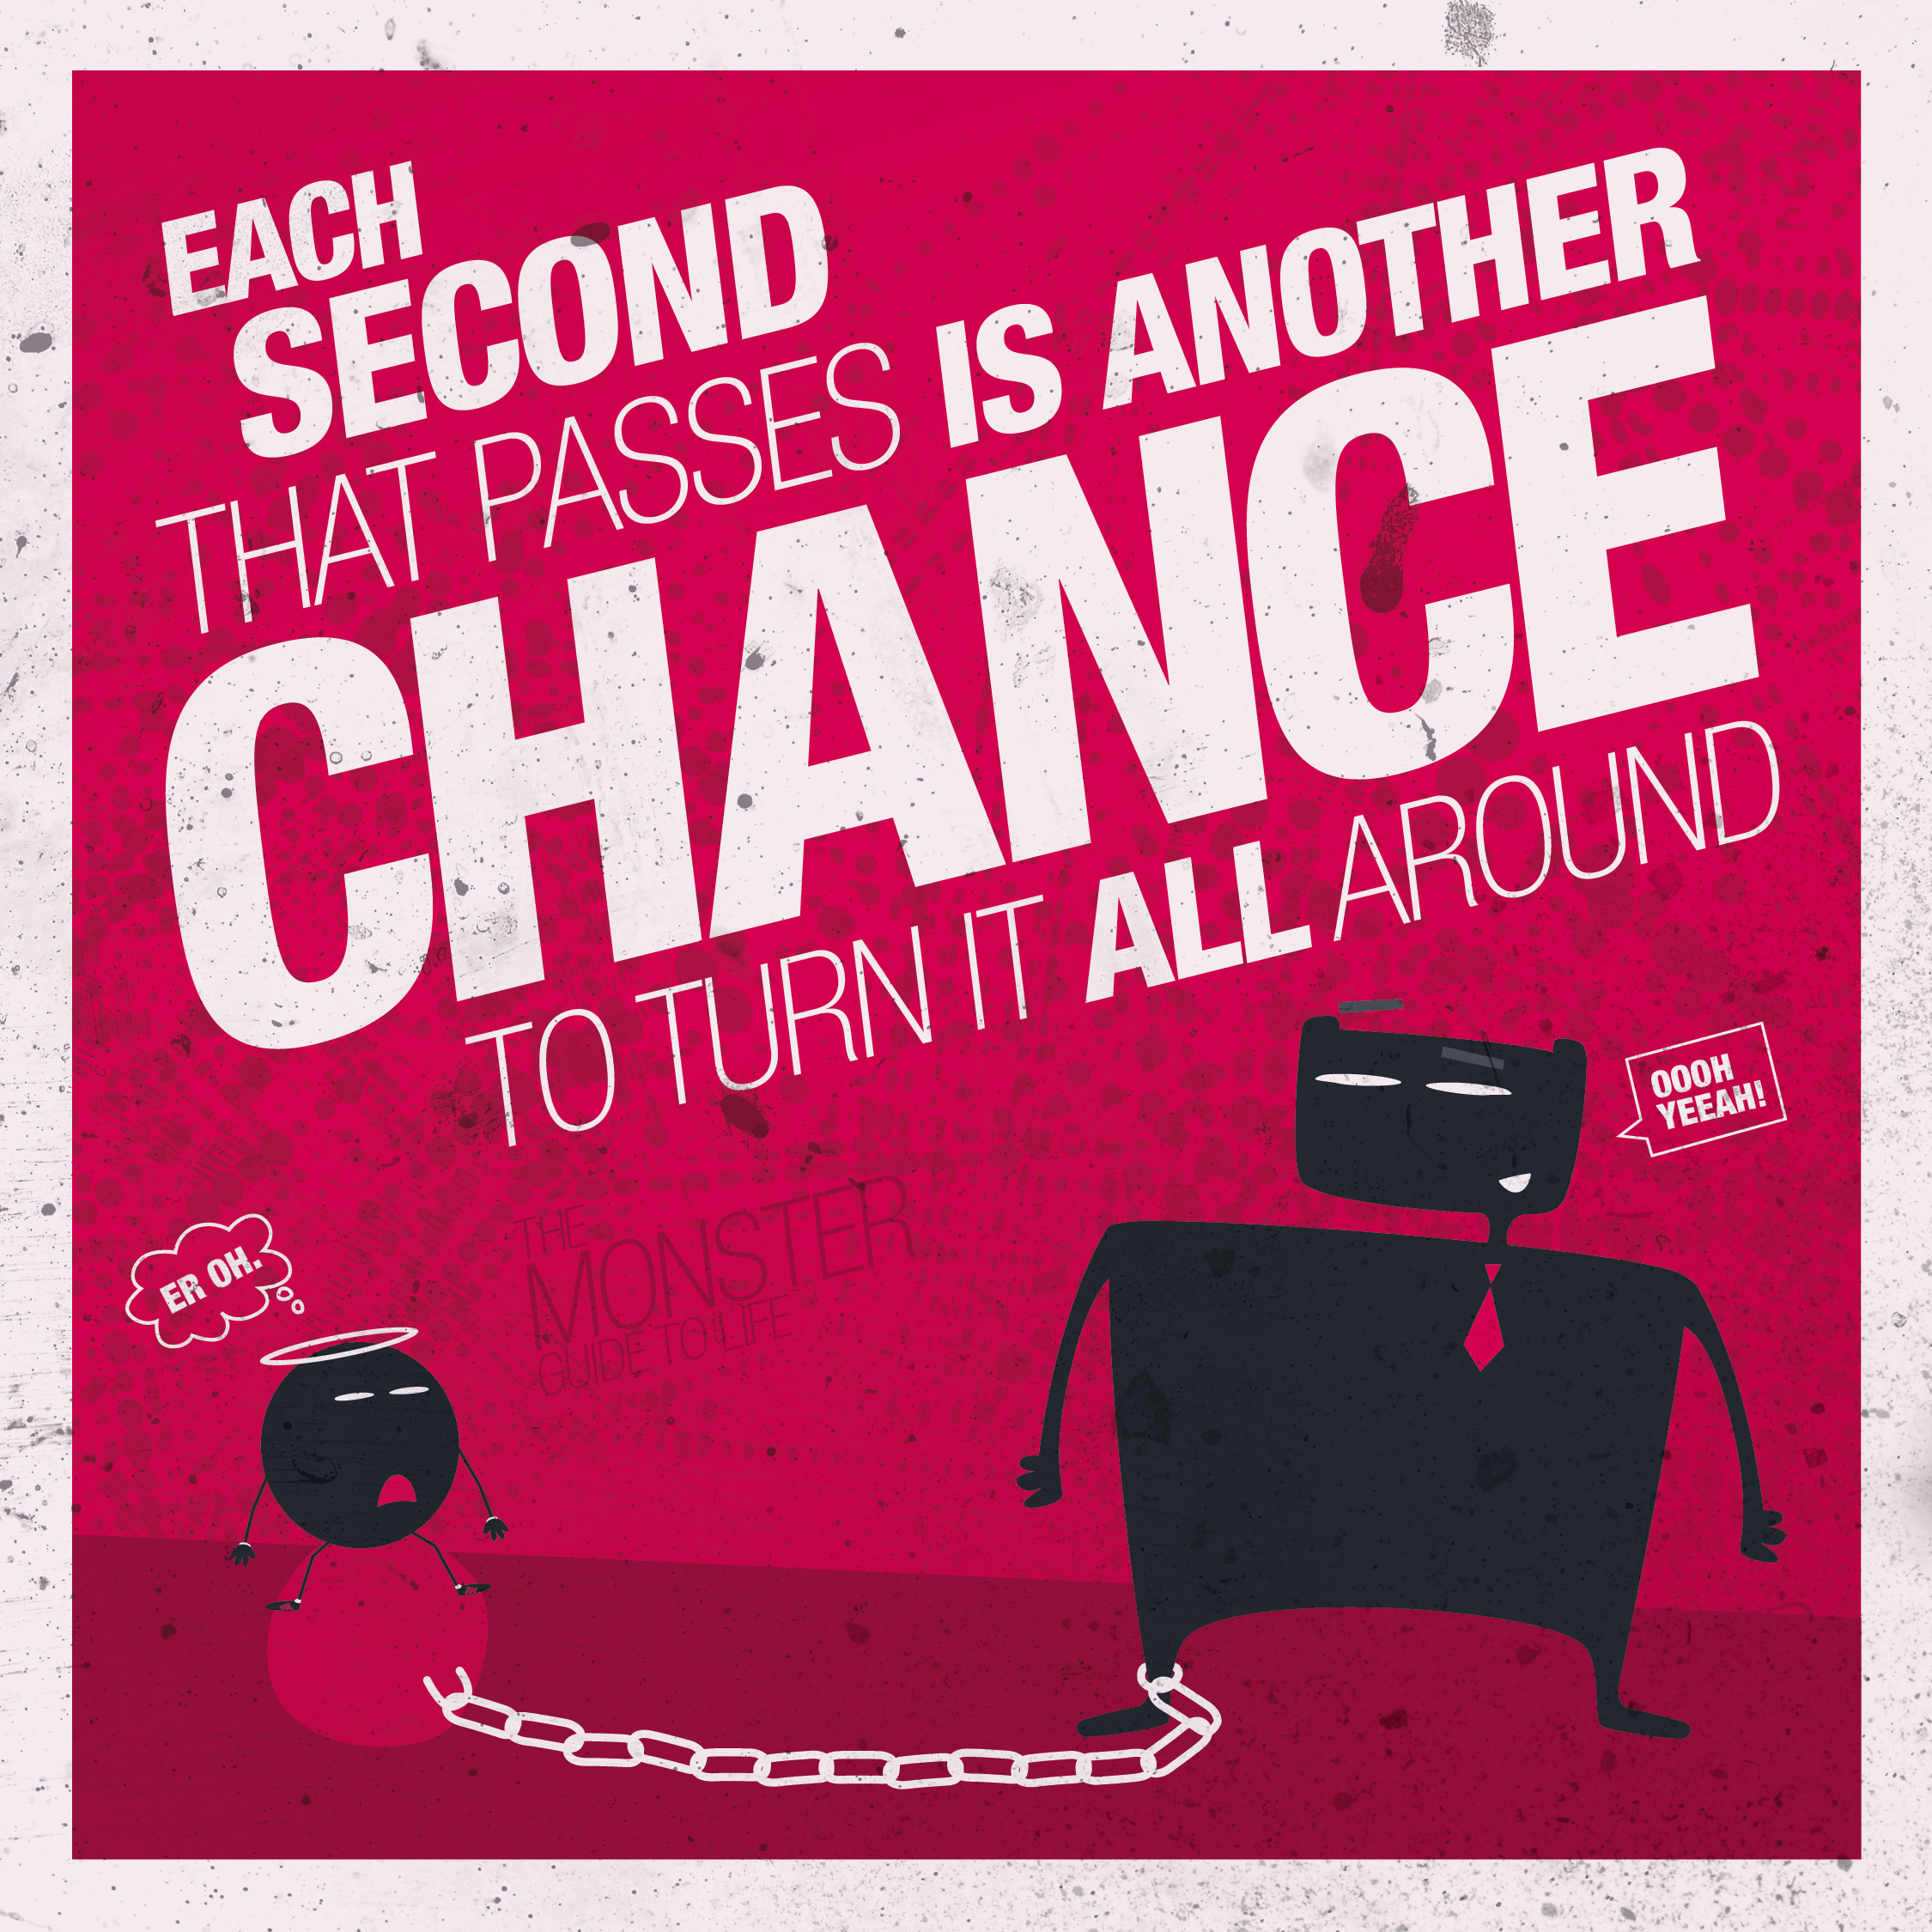 Each Second That Passes Is Another Chance To Turn It All Around